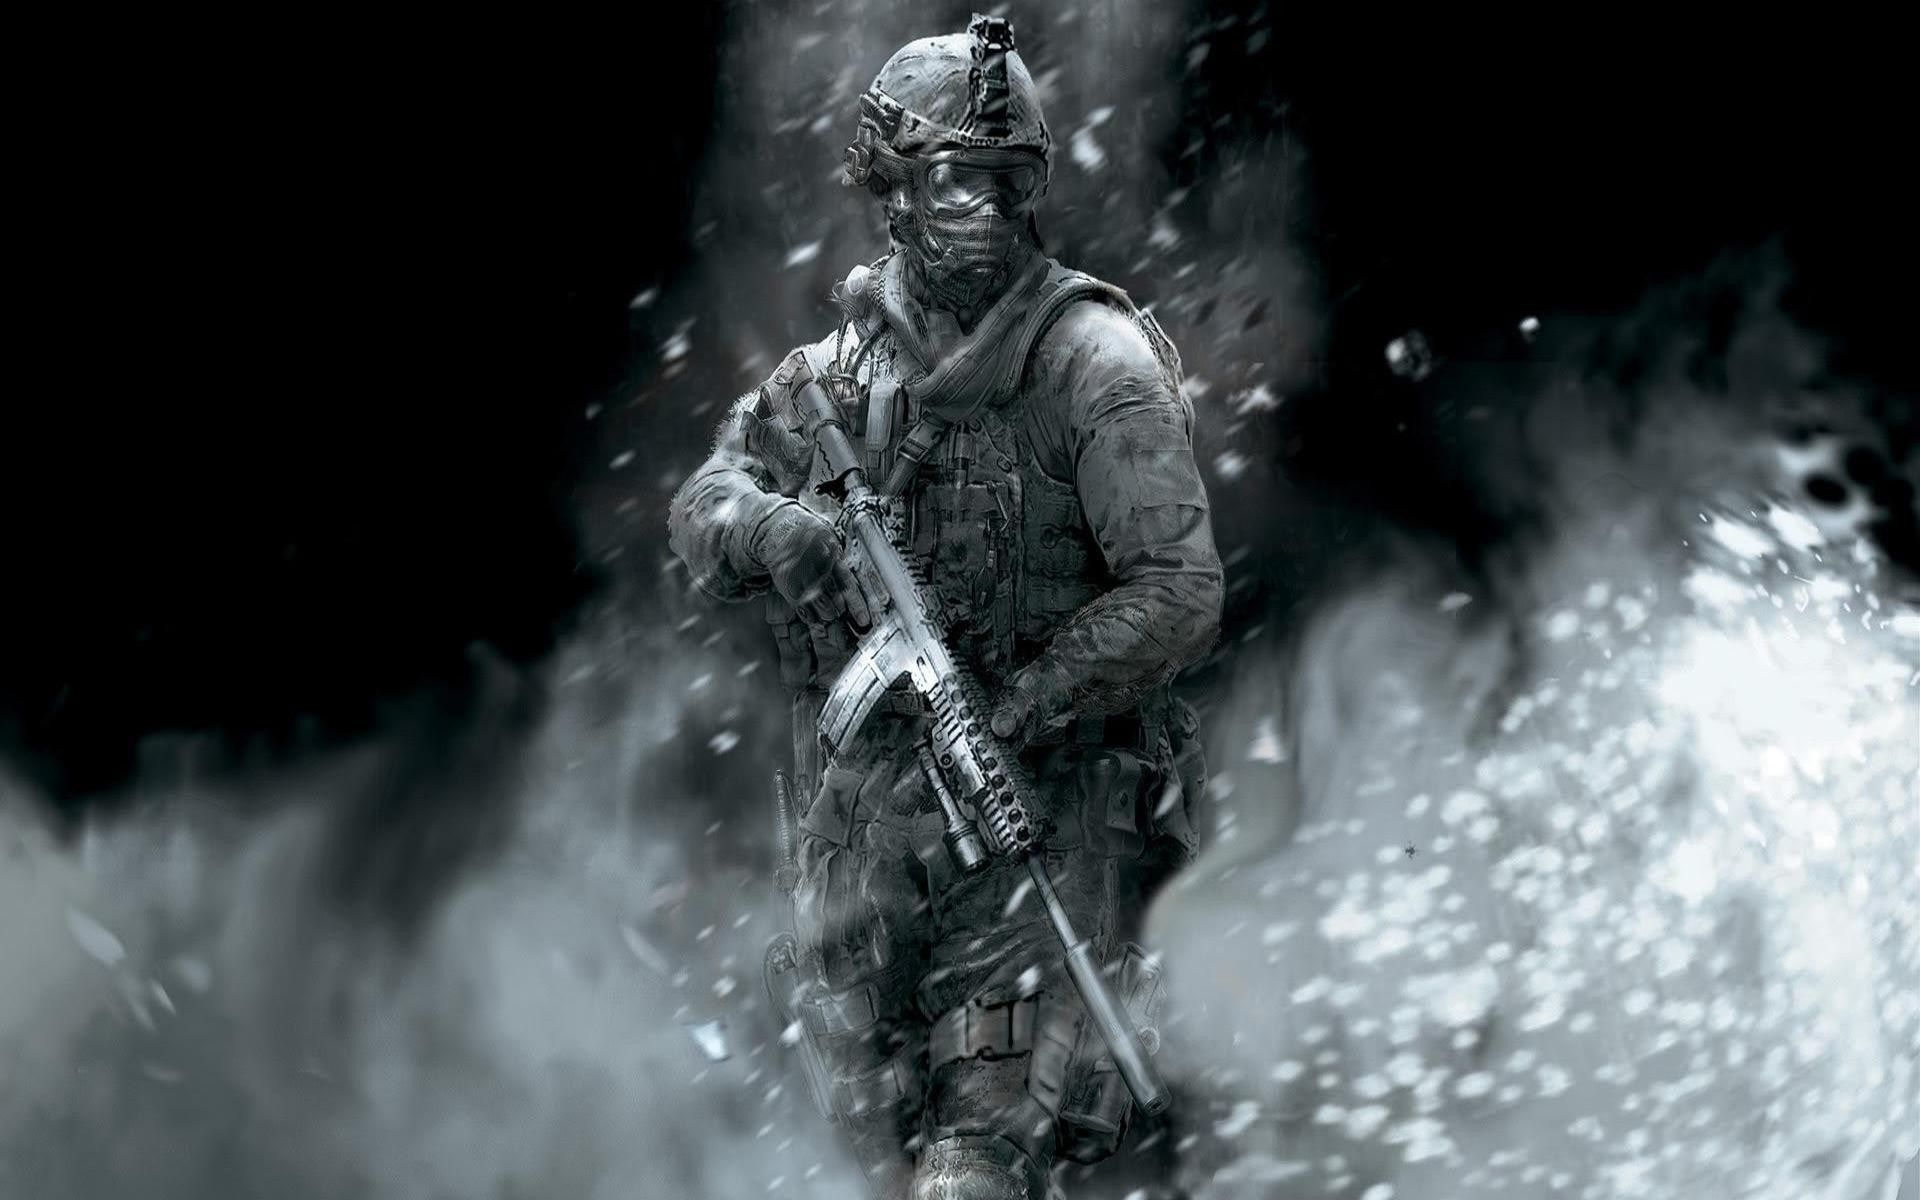 1920x1200 call of duty desktop wallpaper hd wallpapers